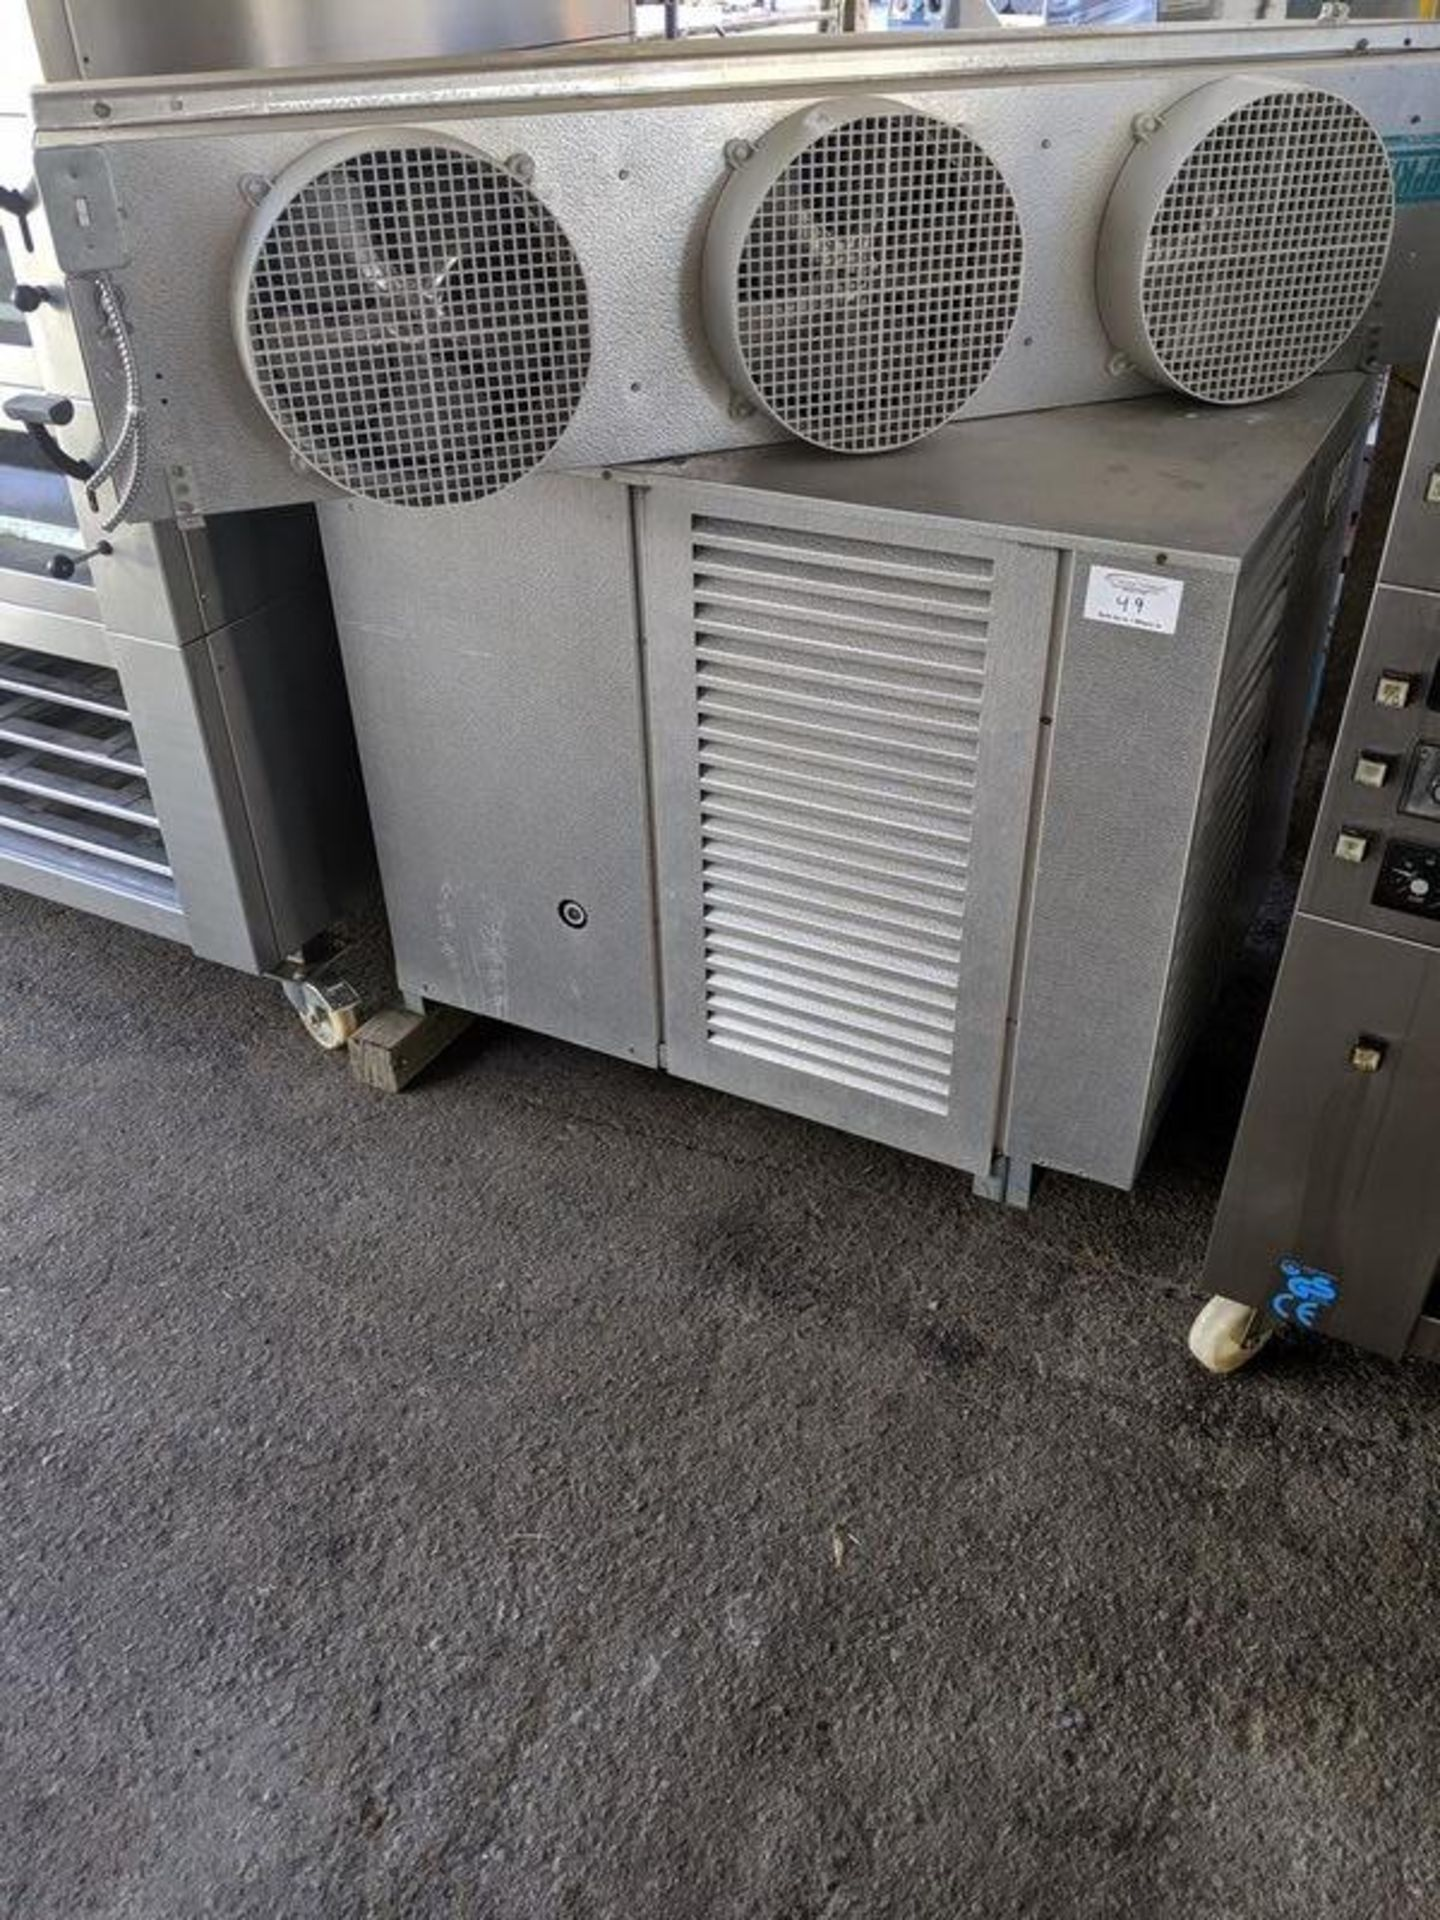 Lot 49 - Russell High Sierra DHO300L44-E Freezer Compressor Complete With 3 Fan Coil